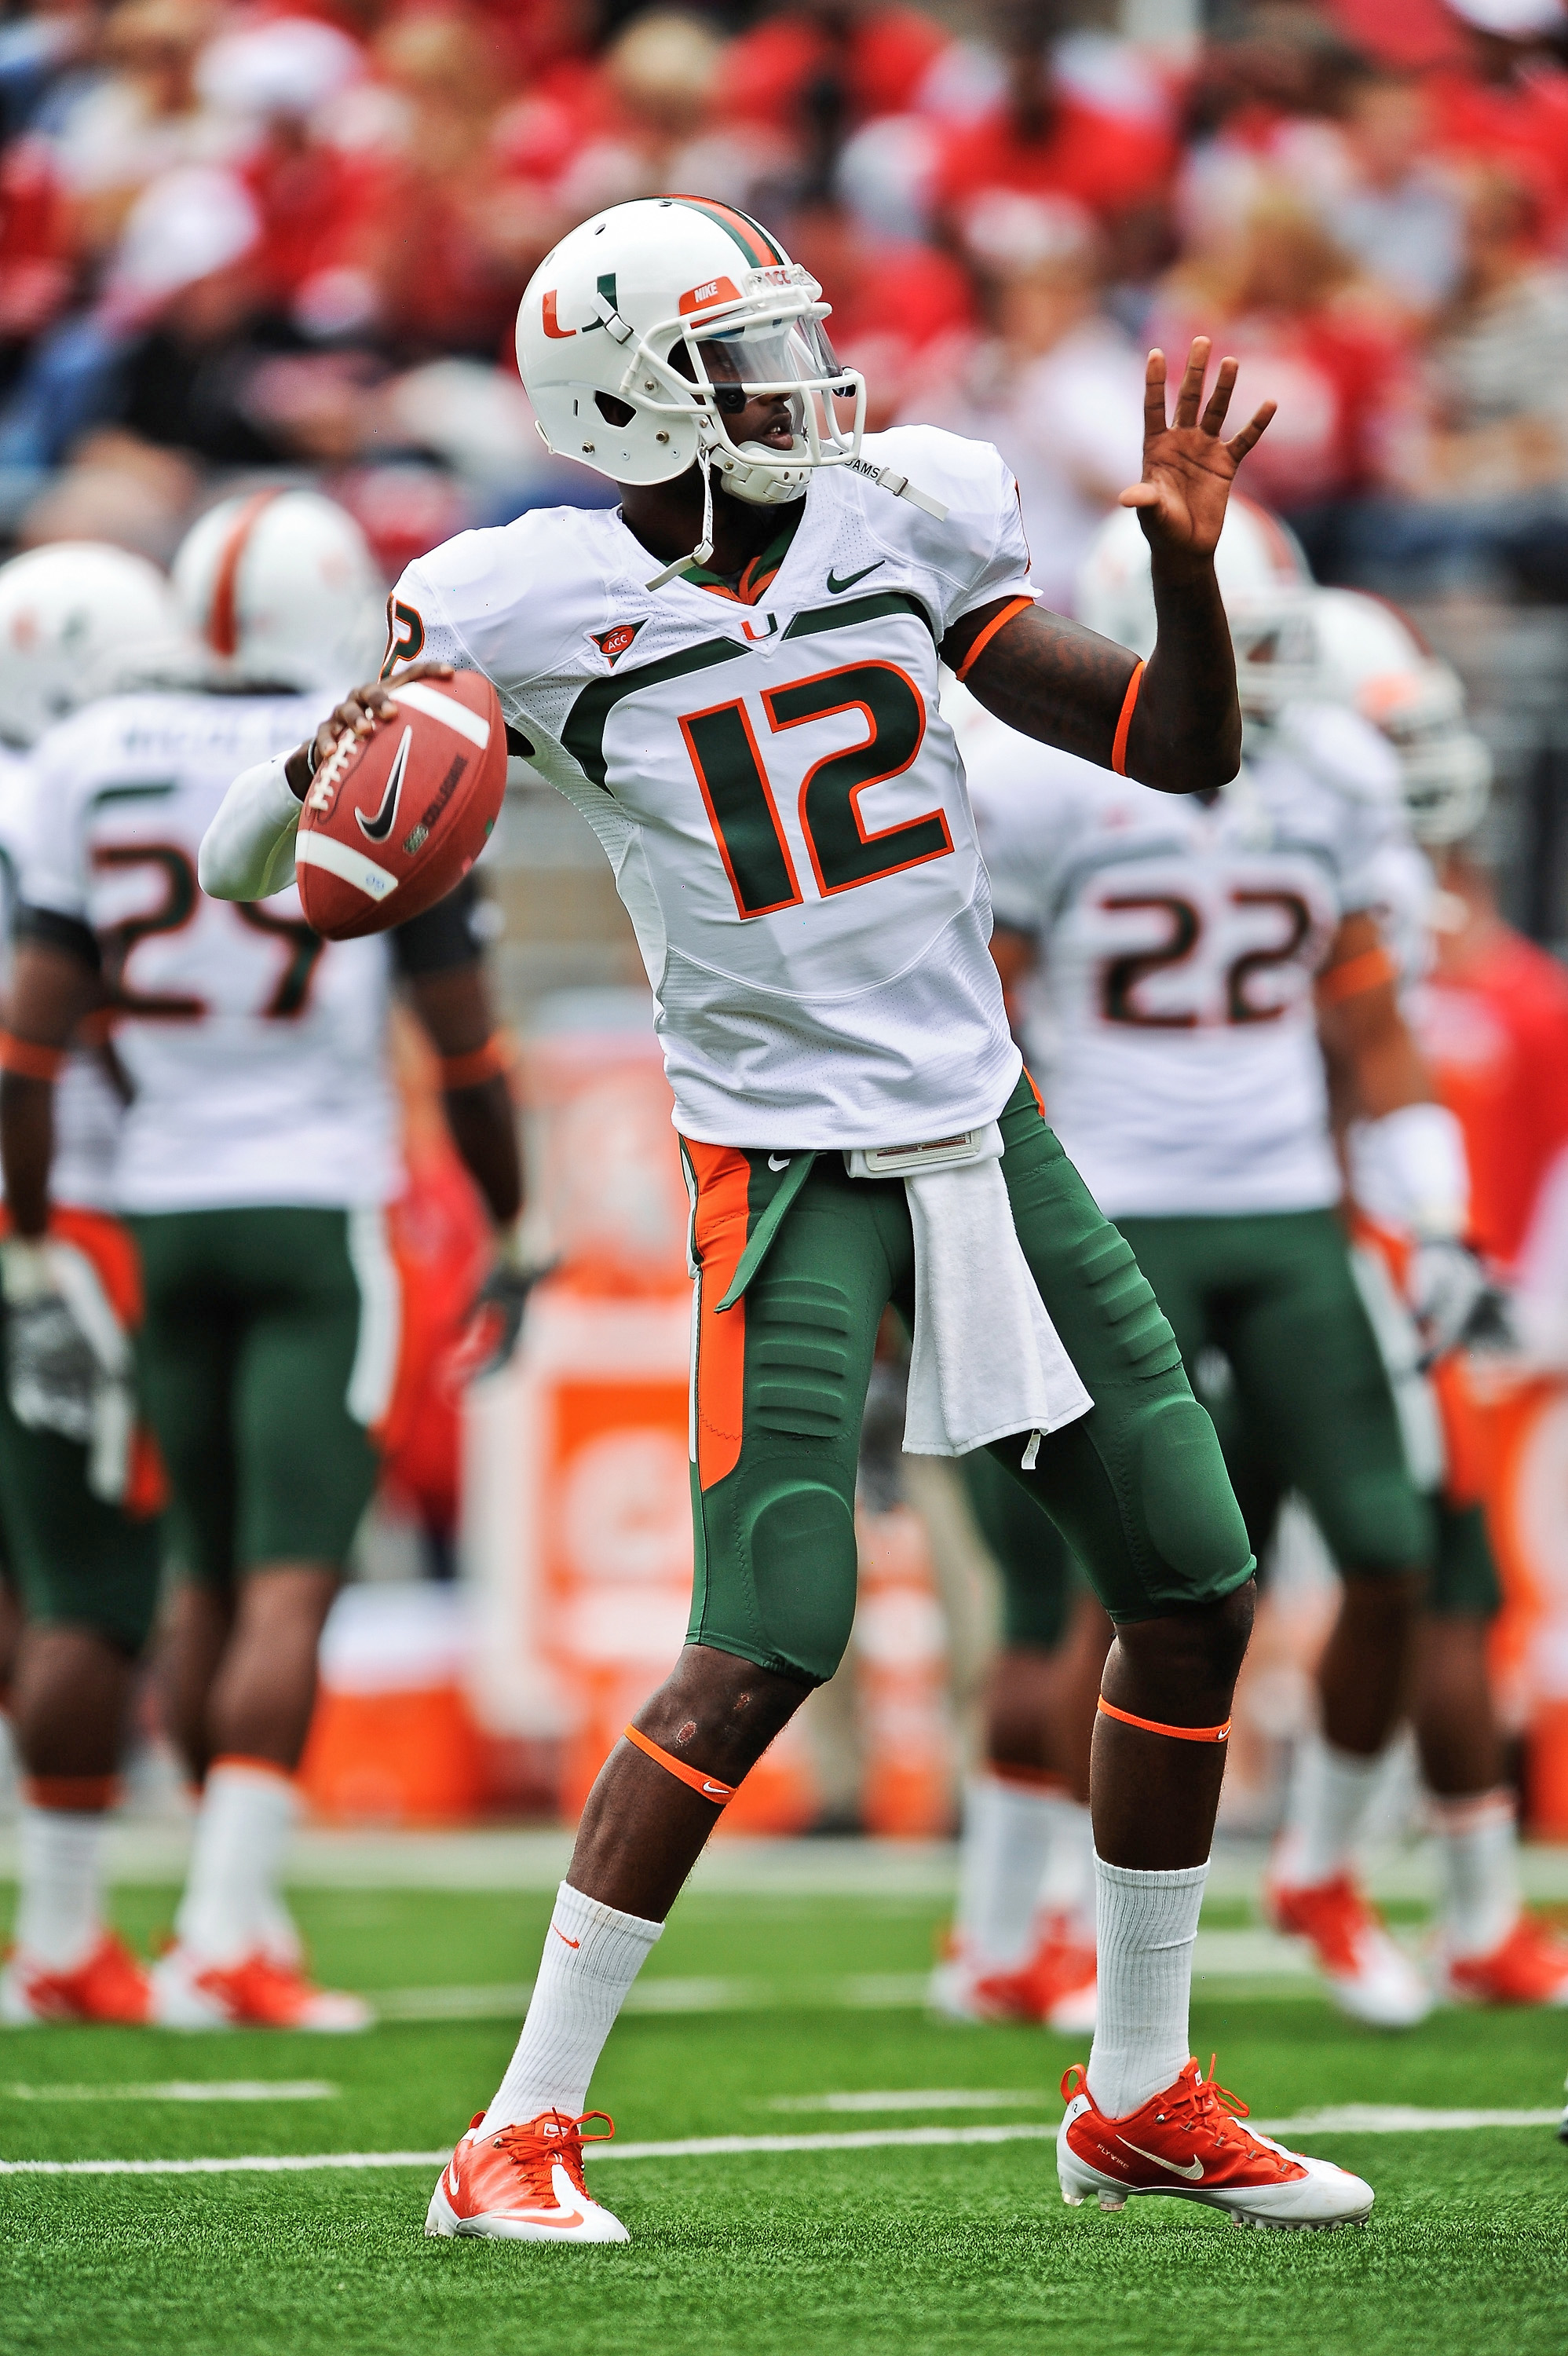 COLUMBUS, OH - SEPTEMBER 11:  Quarterback Jacory Harris #12 of the Miami Hurricanes warms up before a game against the Ohio State Buckeyes at Ohio Stadium on September 11, 2010 in Columbus, Ohio.  (Photo by Jamie Sabau/Getty Images)